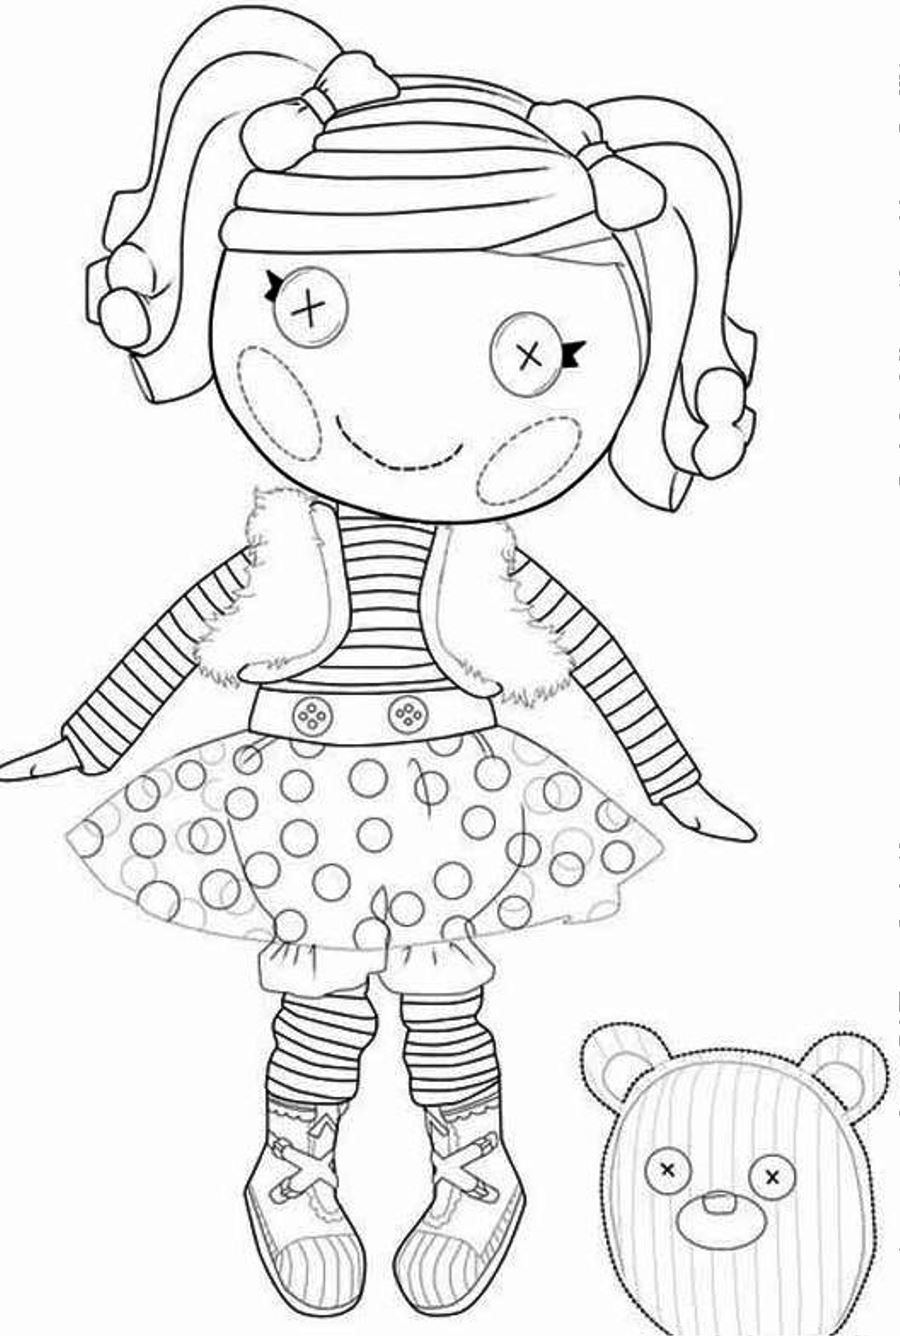 Print or Download Lalaloopsy Free Printable Coloring Pages No 1